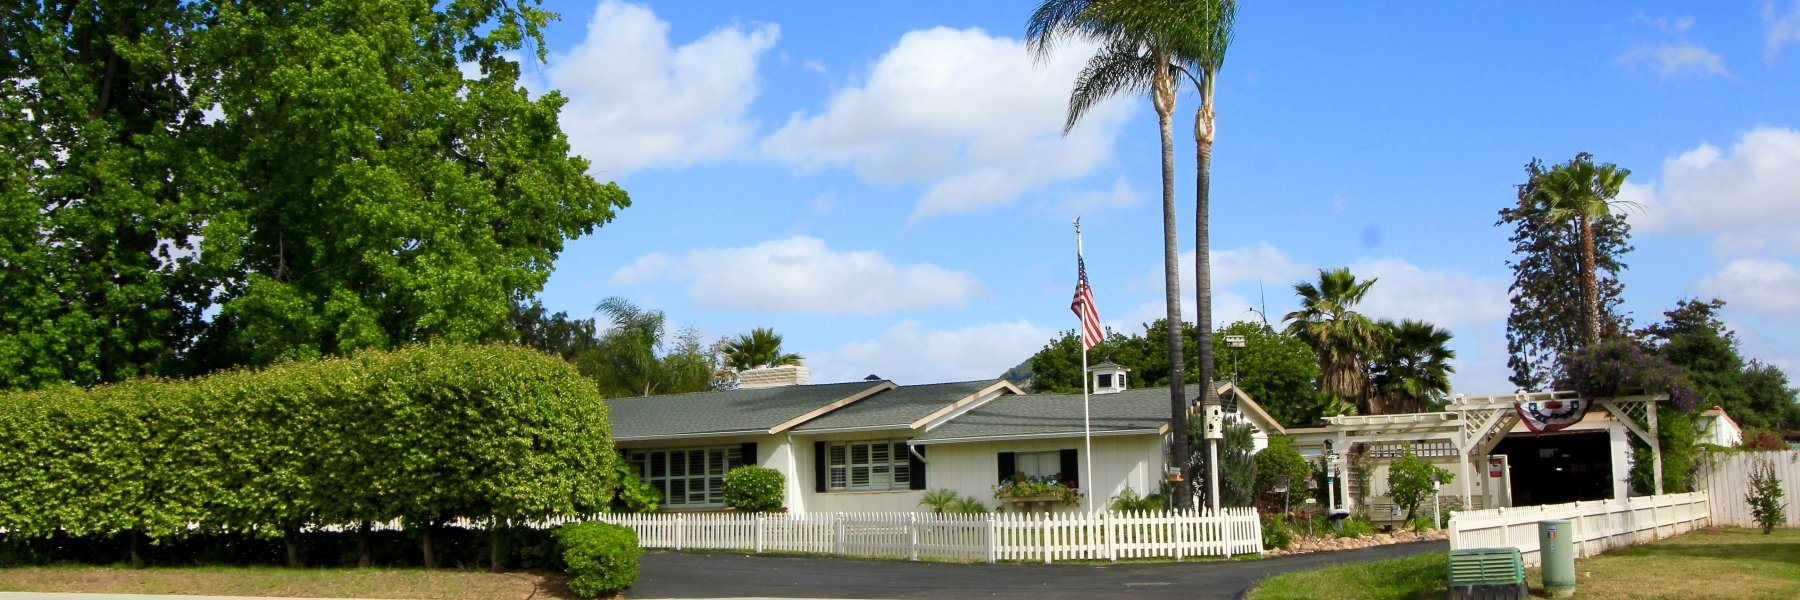 Oak Hill is a community of homes in Escondido California